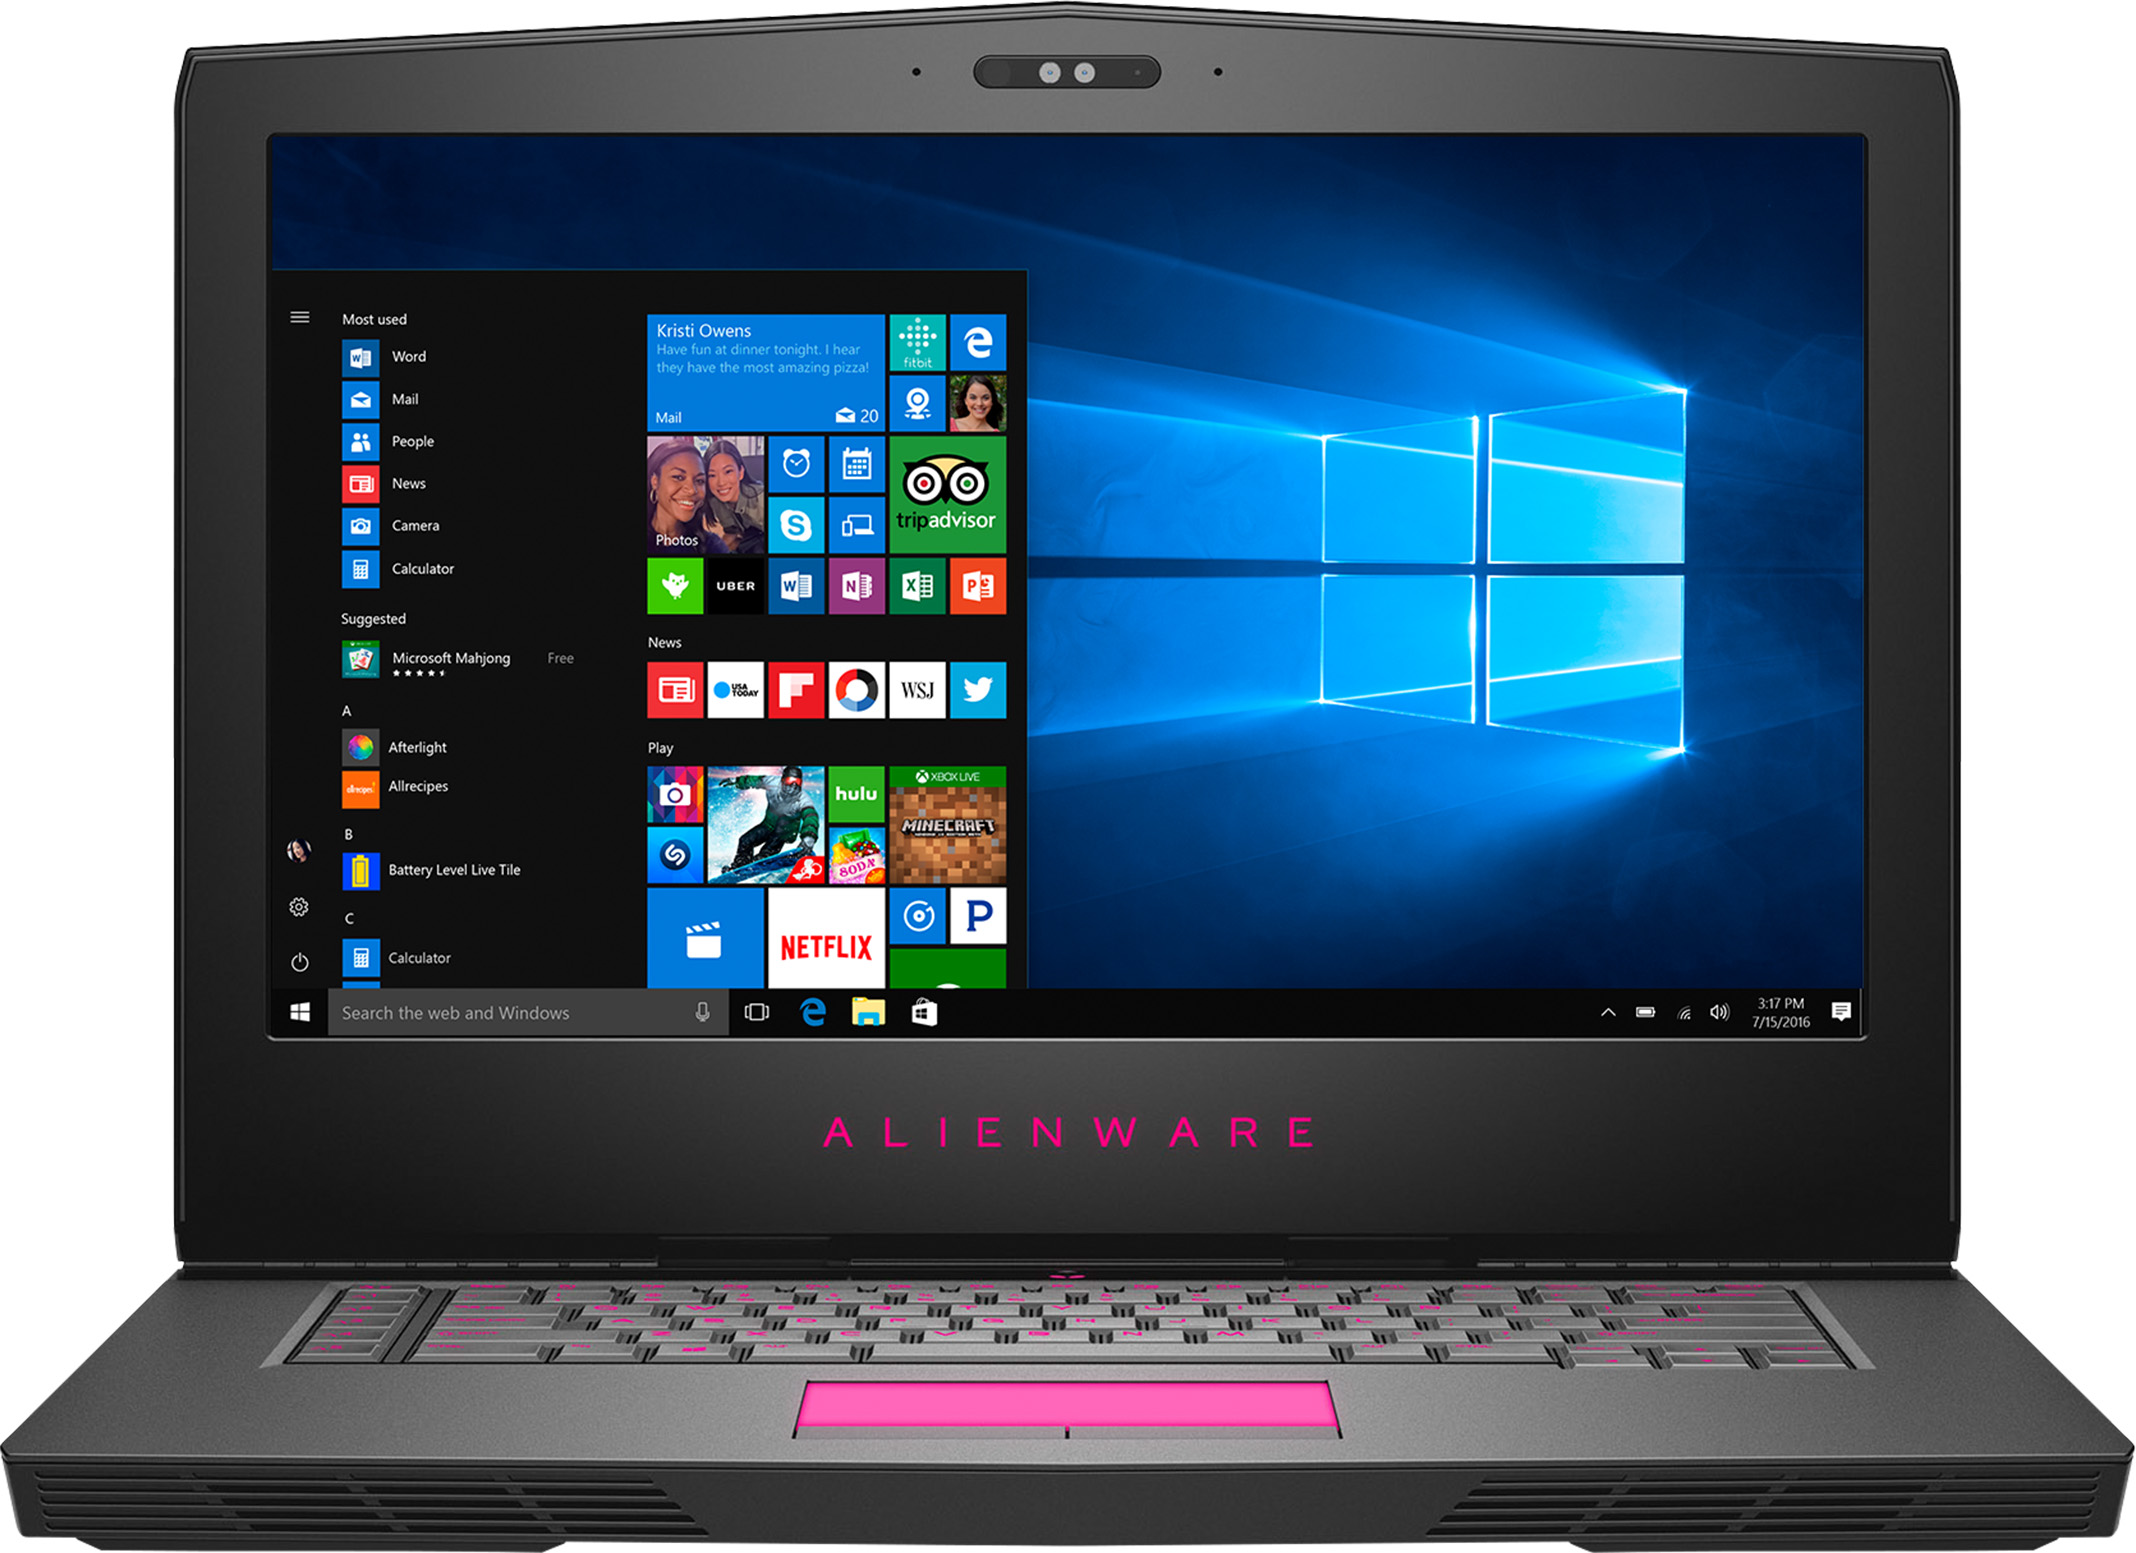 Alienware 15 R3 693HT Gaming Laptop